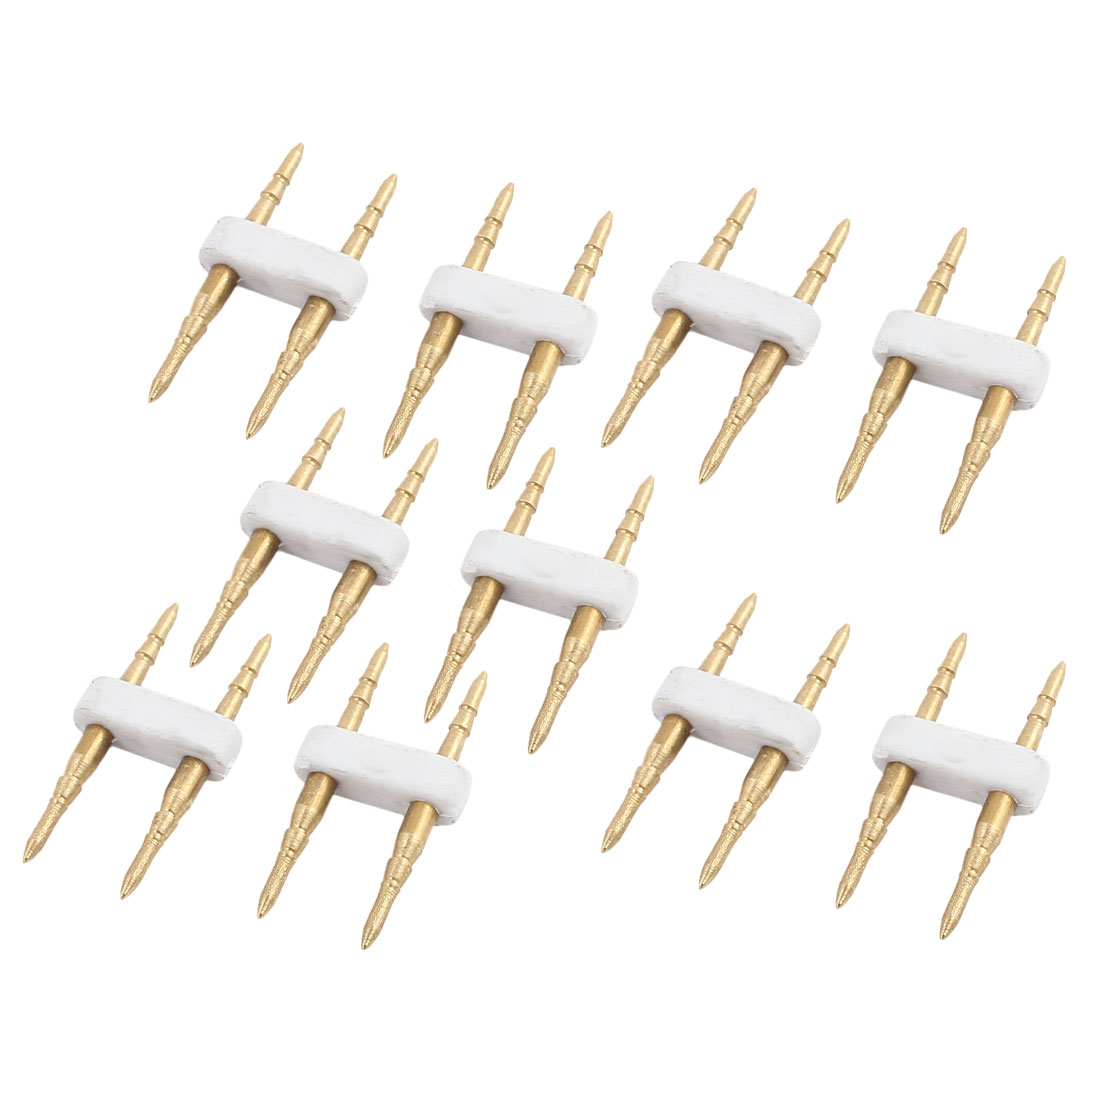 10 Pcs 7 mm Terminal Pitch 2 Needles for LED Light Strips Connector Output Cable